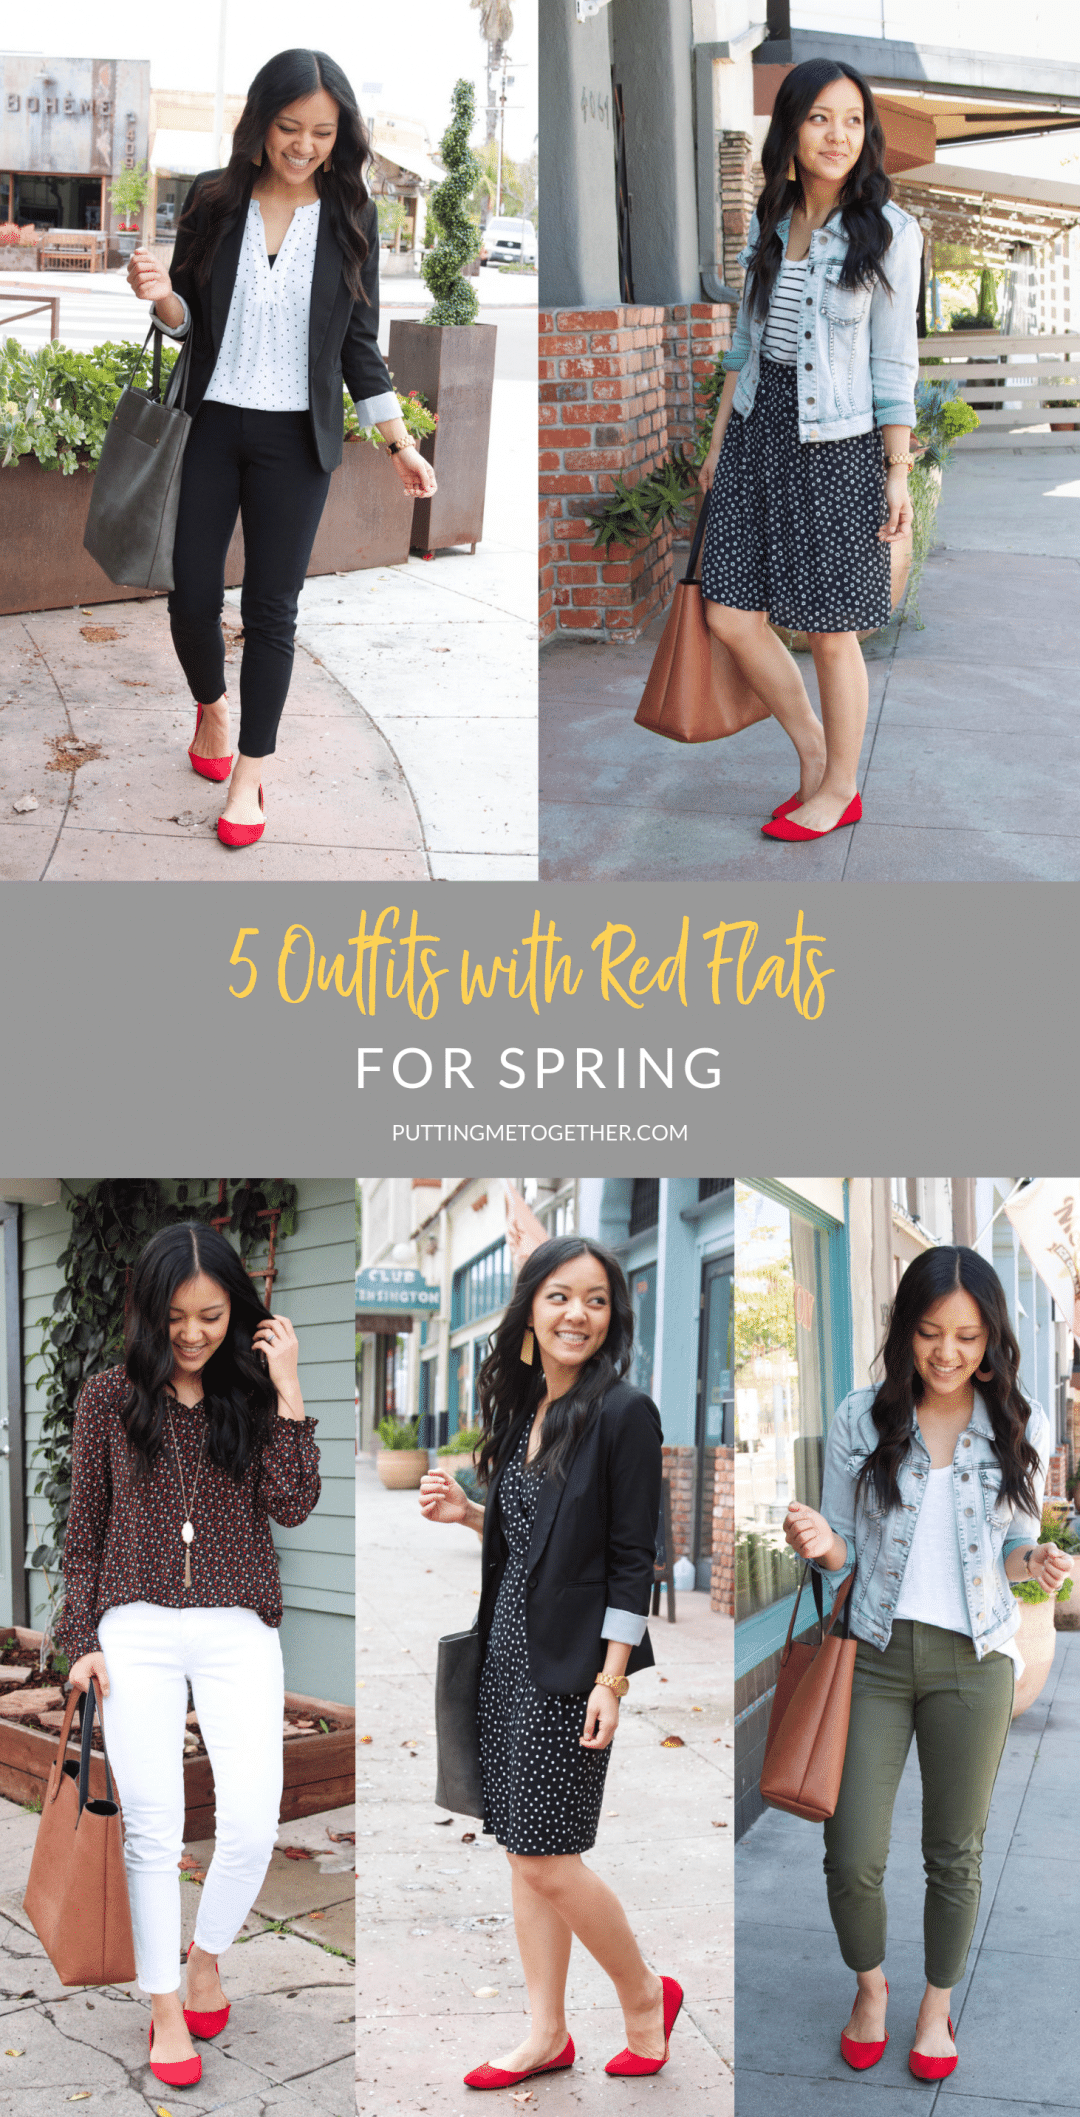 5 Outfits With Red Flats for Spring